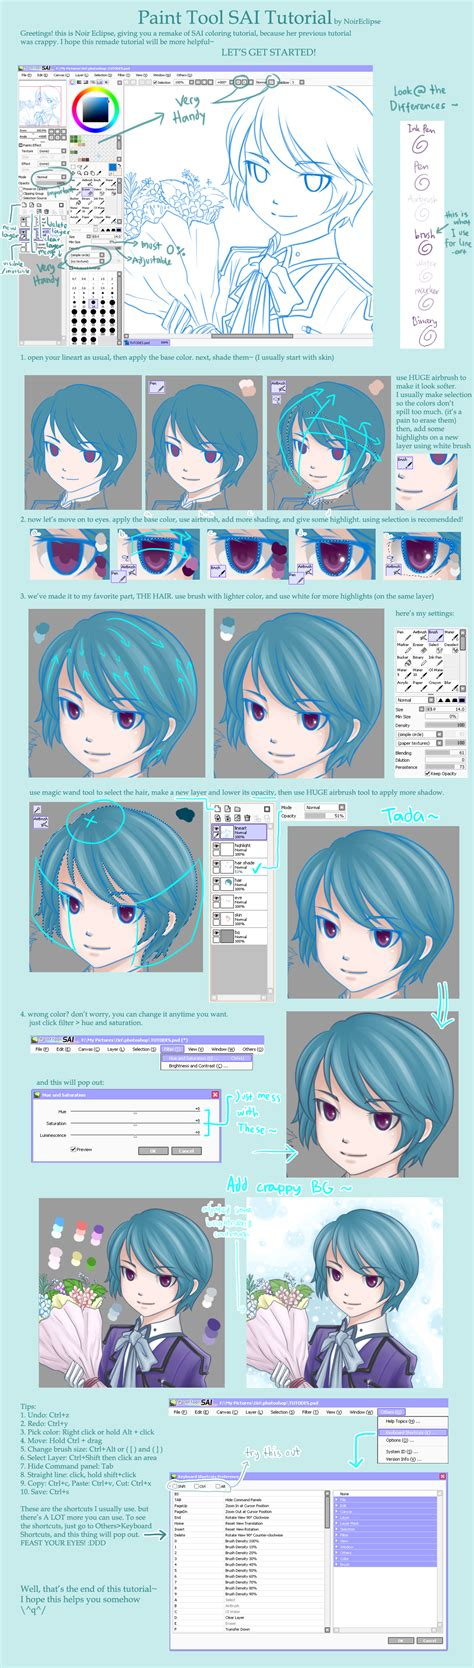 Coloring Tutorial Sai by Paint Tool Sai Tutorial By Noireclipse On Deviantart